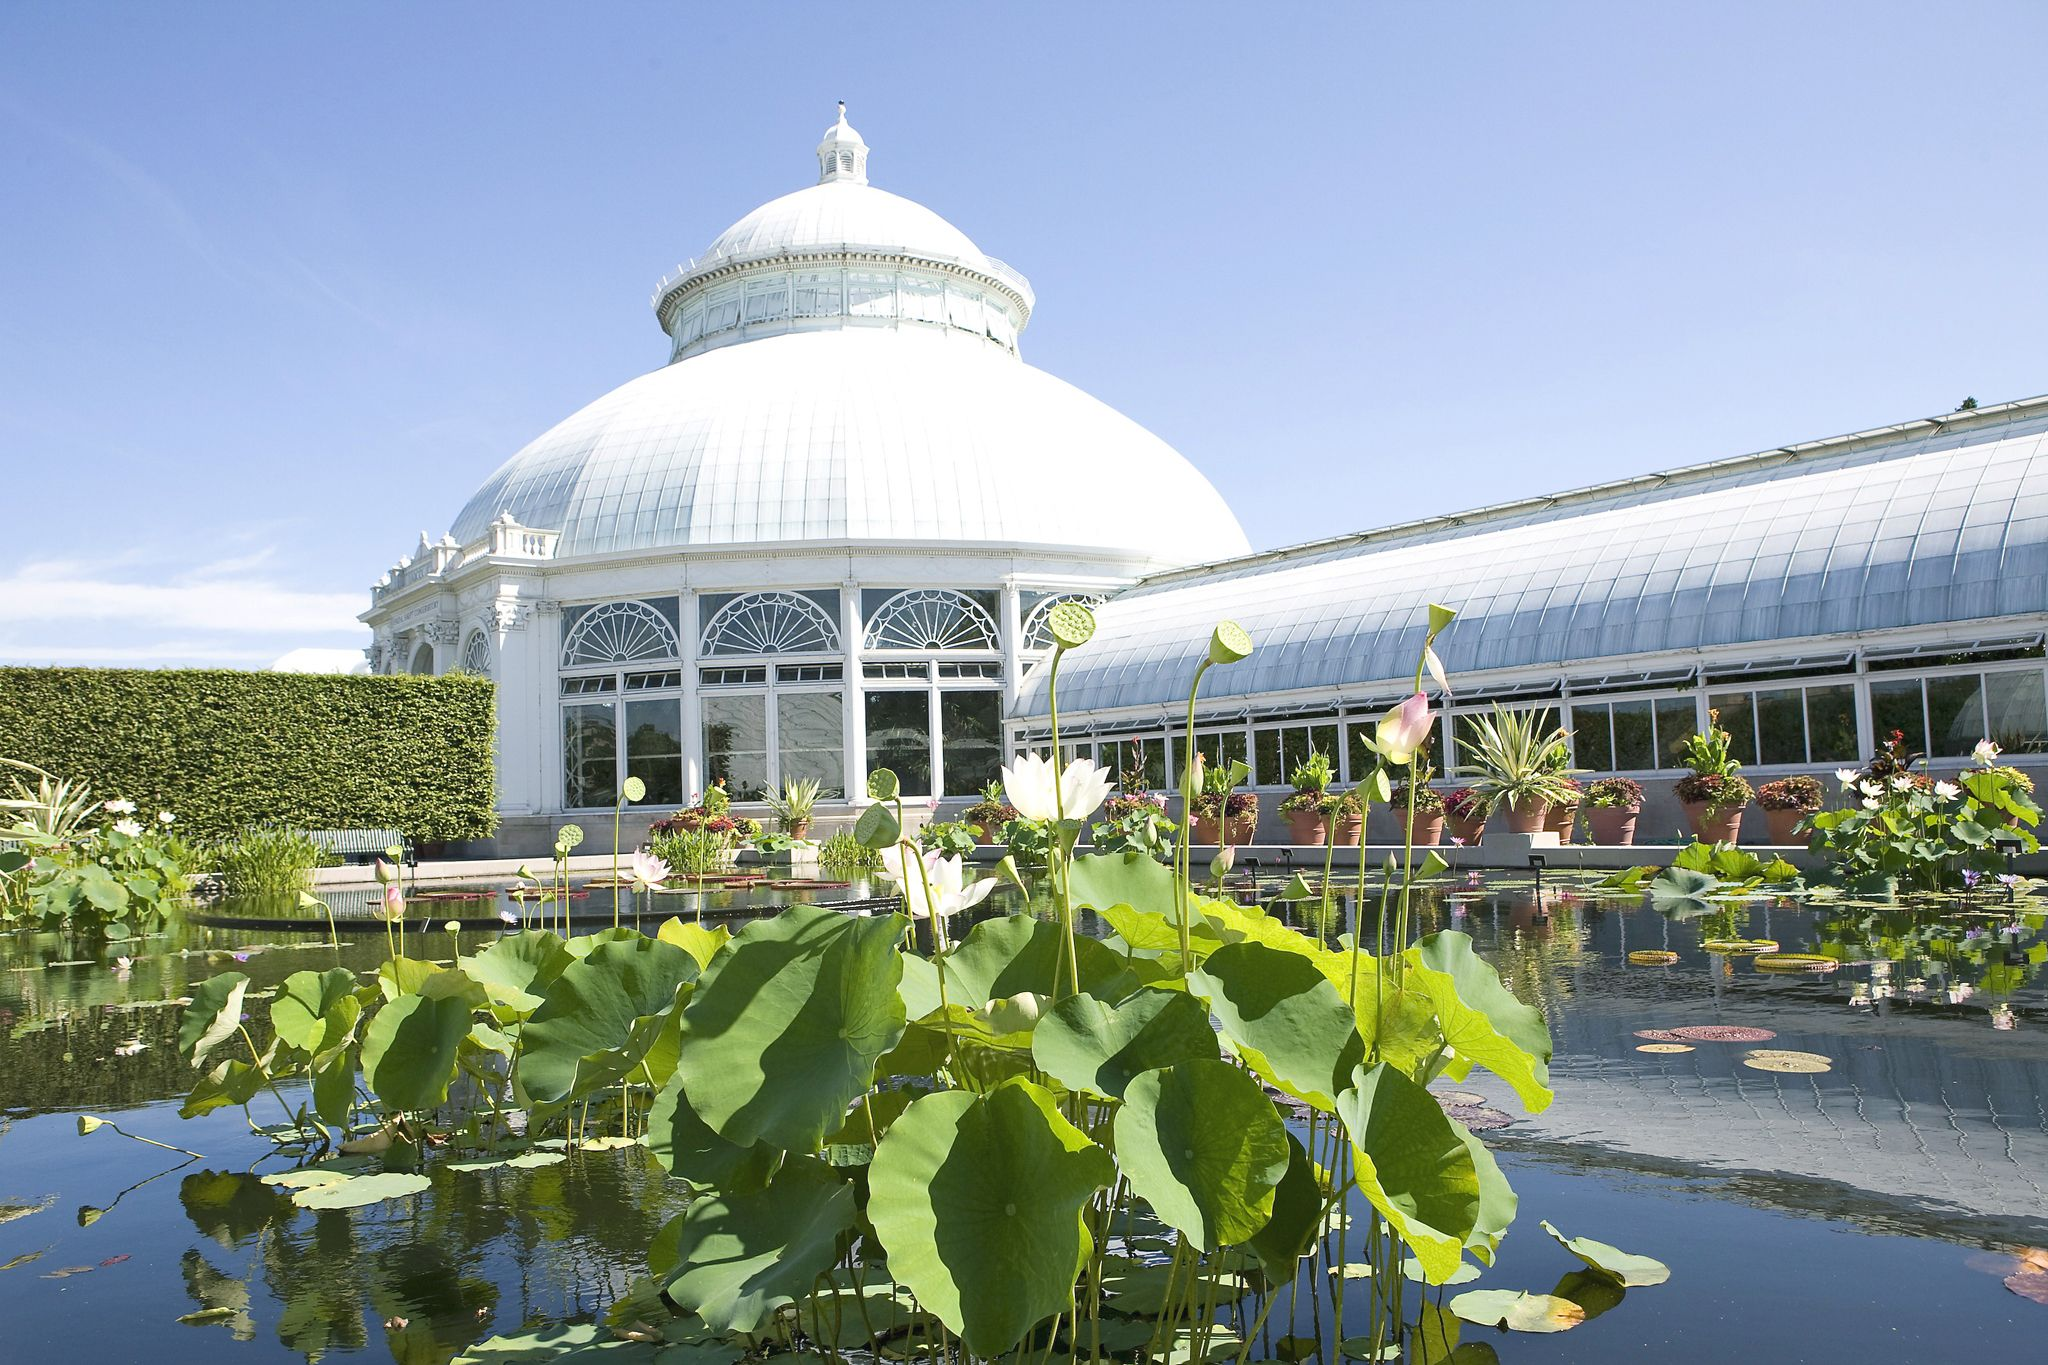 The top attractions in the bronx and staten island the - Bronx botanical garden free admission ...